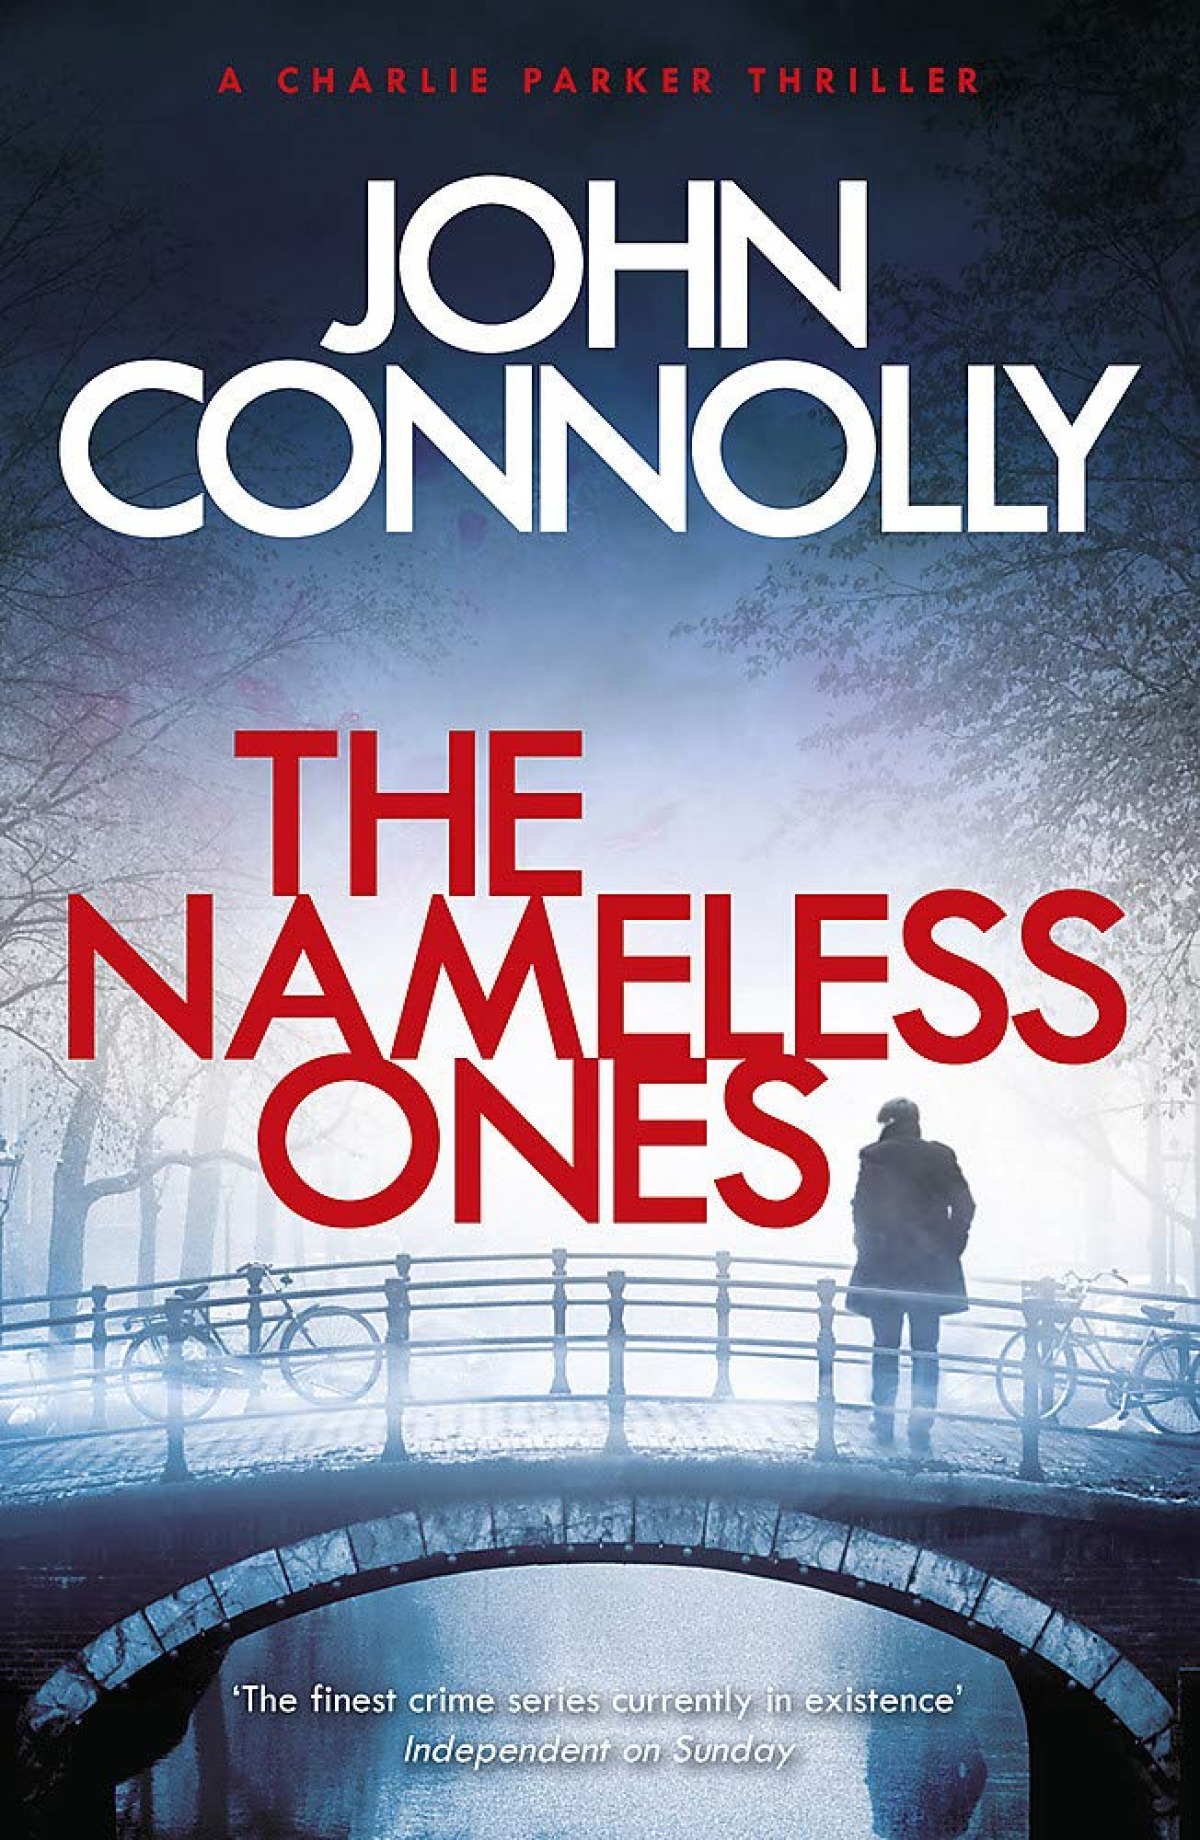 The Nameless Ones